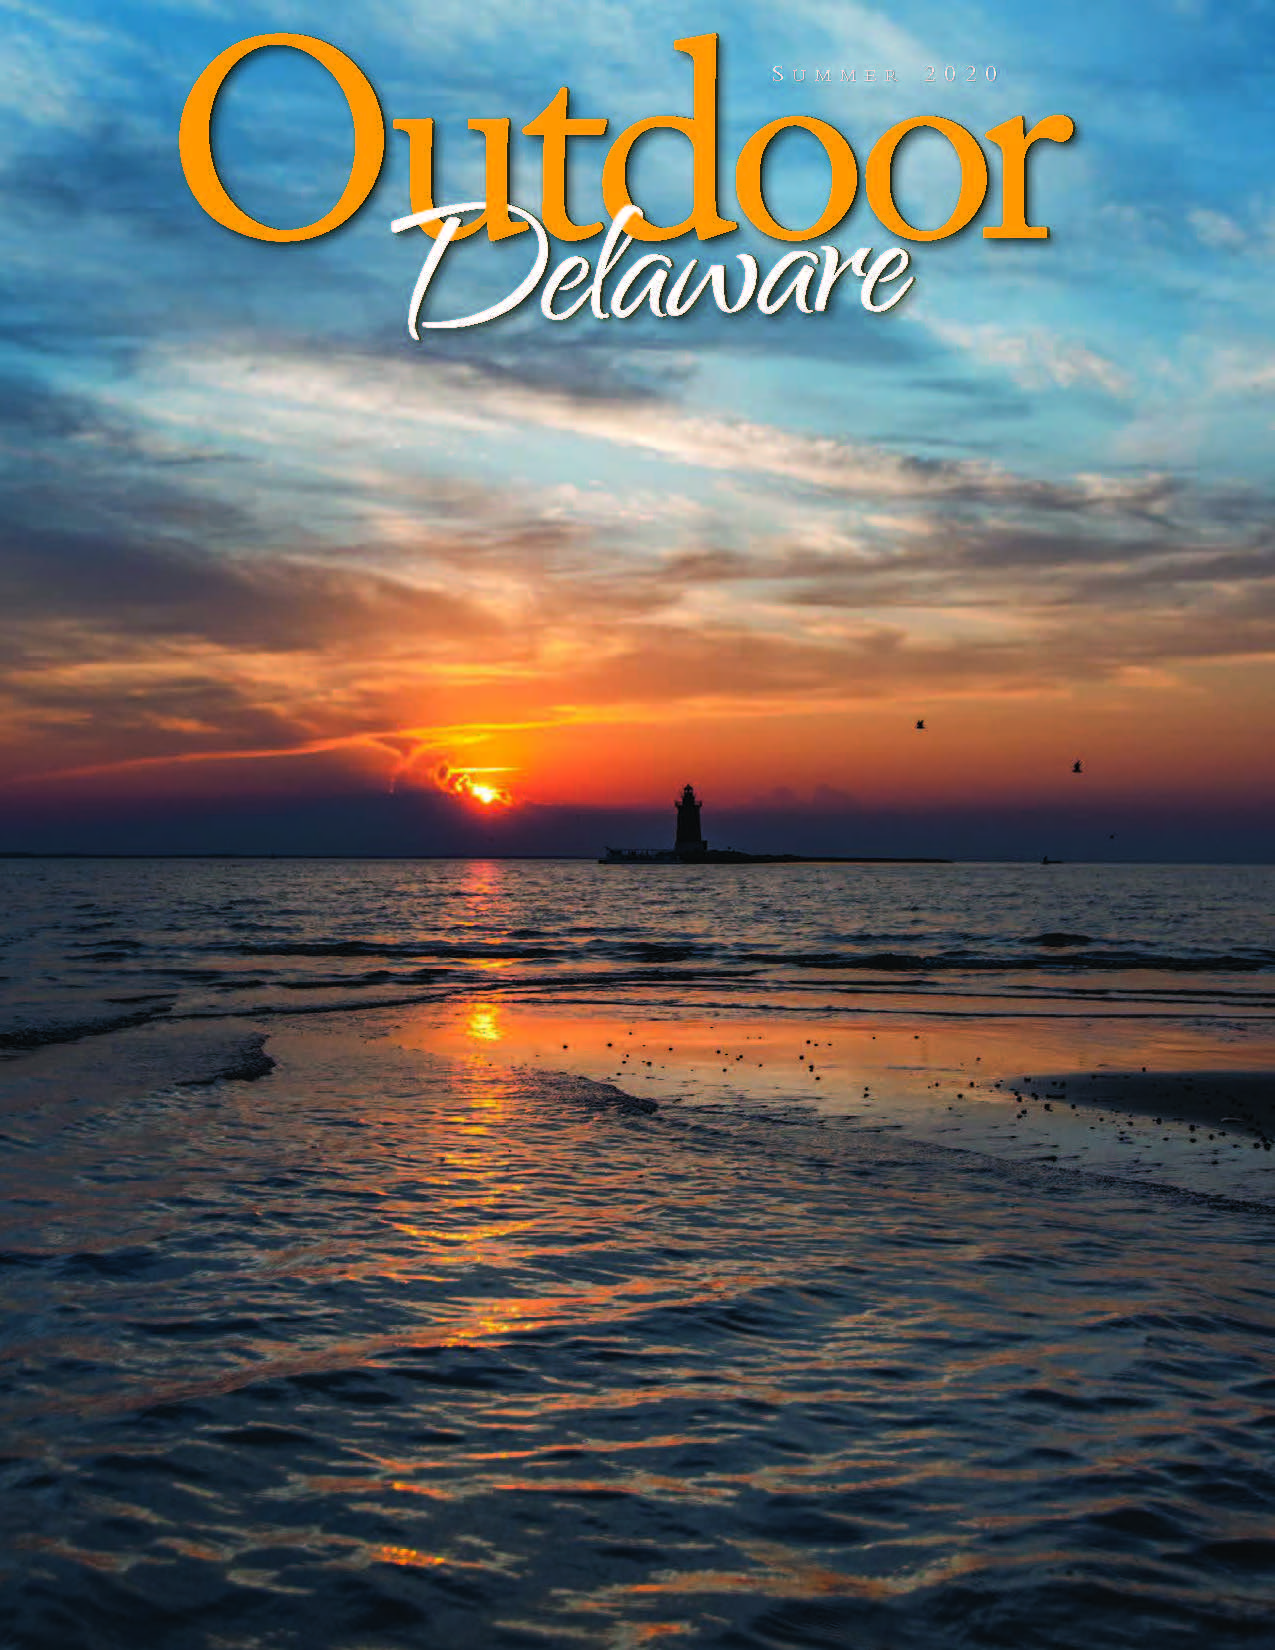 Summer 2020 Outdoor Delaware Magazine